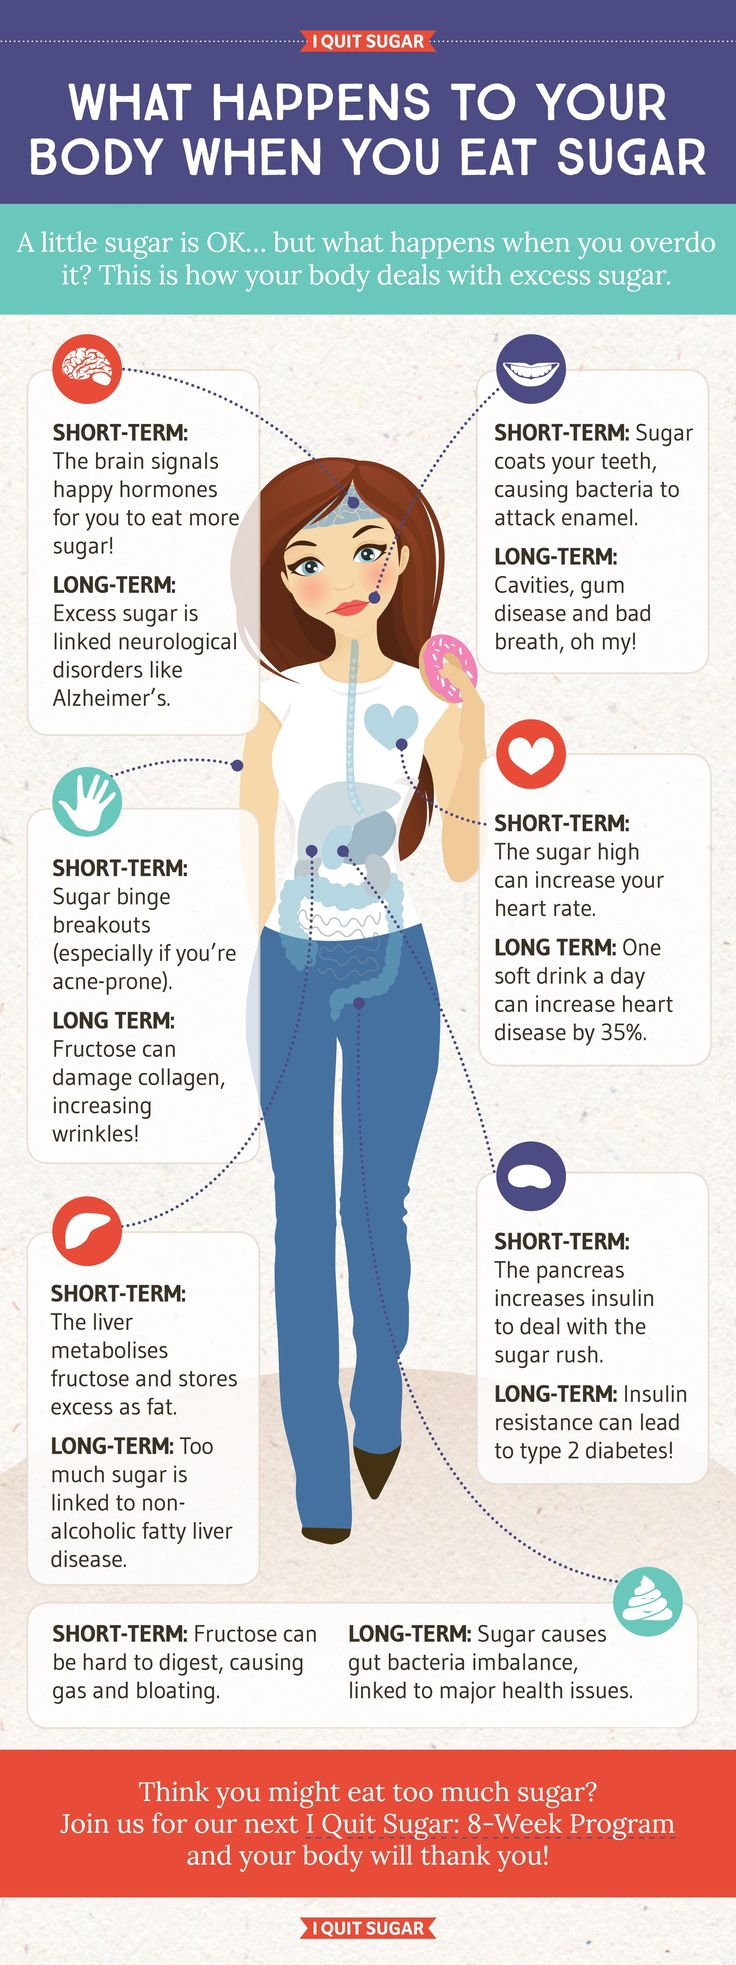 I Quit Sugar - What happens to your body when you eat sugar